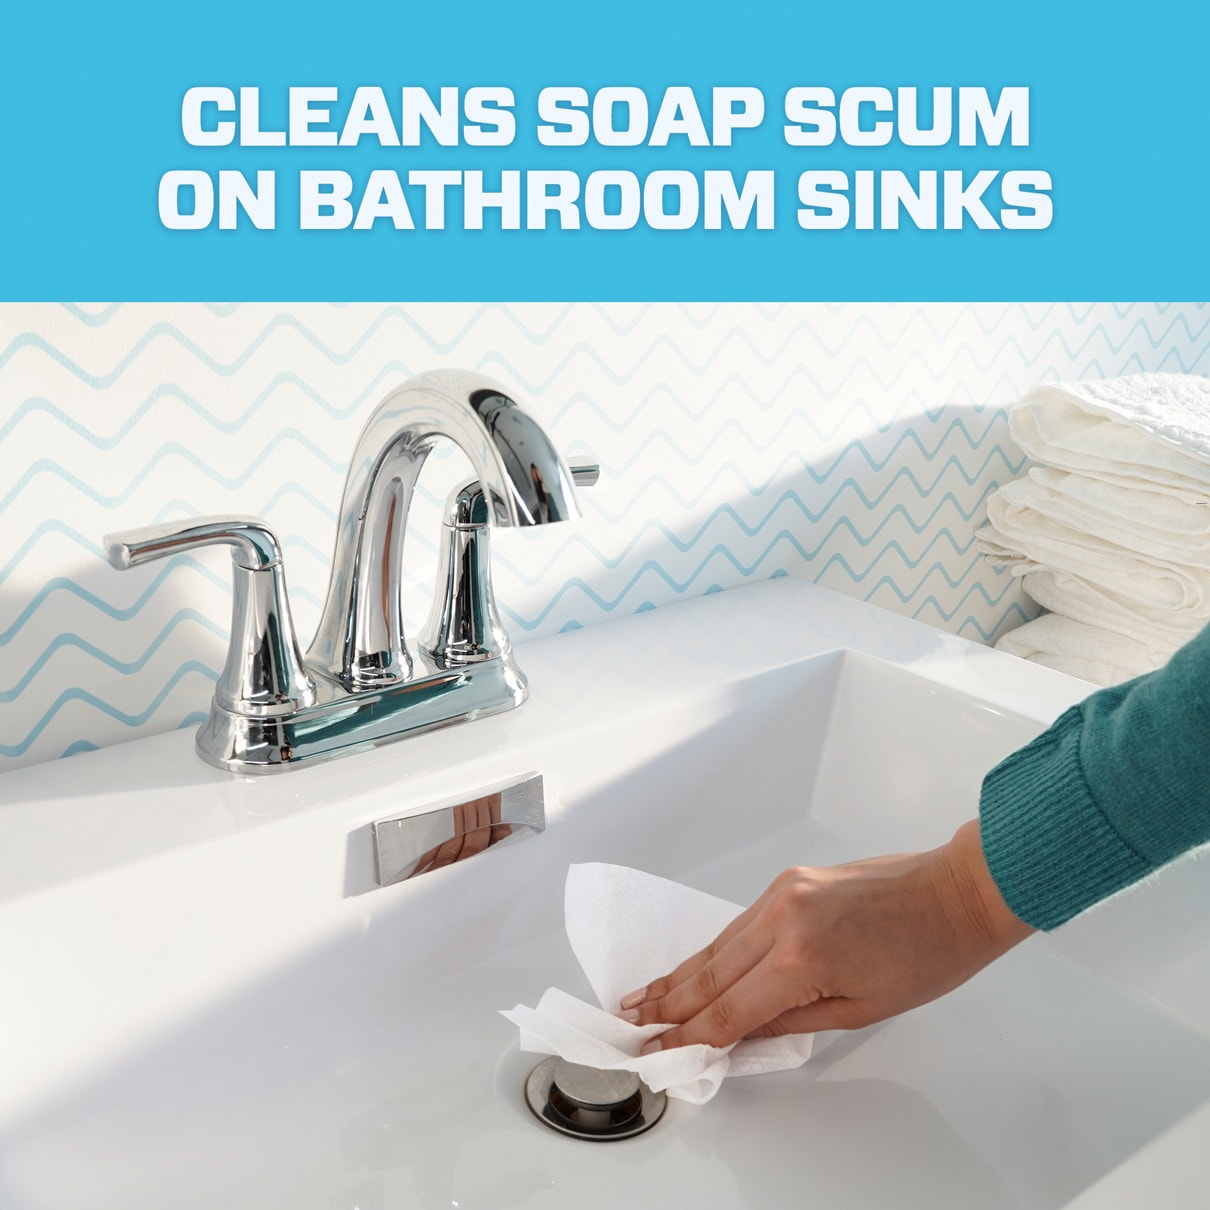 Mr. Clean cleans soap scum on bathroom sinks